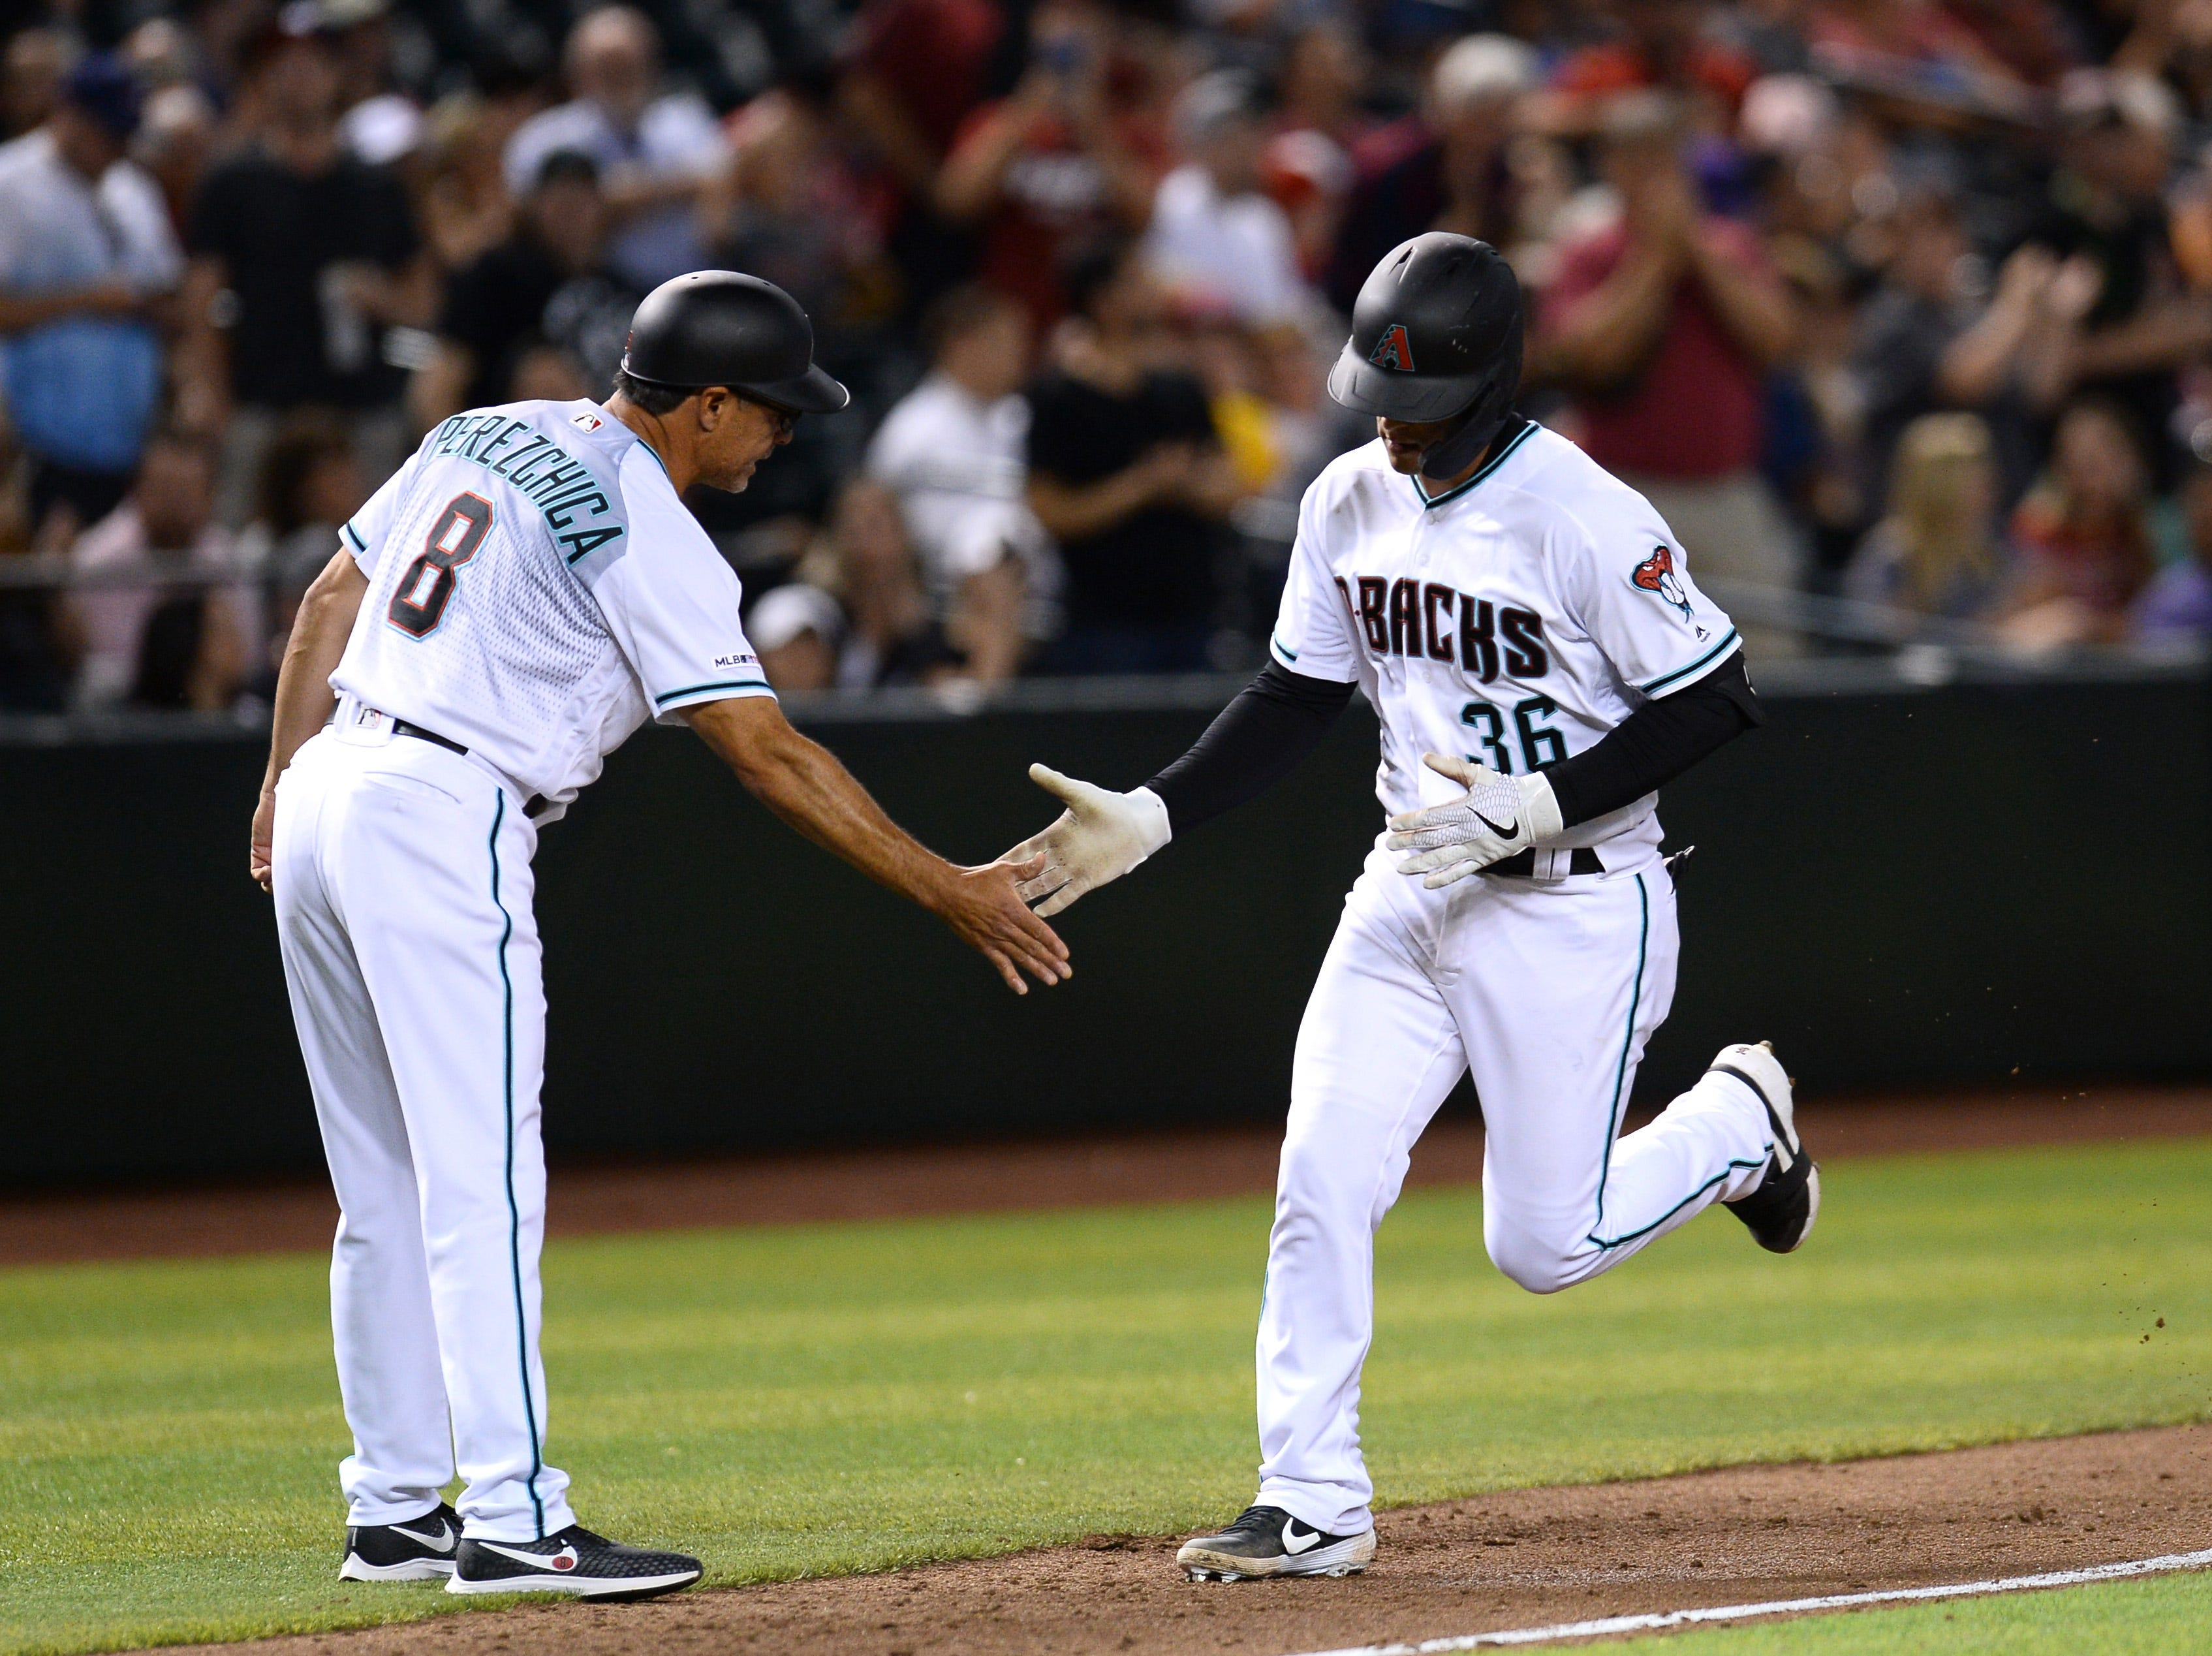 Apr 9, 2019; Phoenix, AZ, USA; Arizona Diamondbacks catcher John Ryan Murphy (36) slaps hands with third base coach Tony Perezchica (8) after hitting a solo home run against the Texas Rangers during the third inning at Chase Field. Mandatory Credit: Joe Camporeale-USA TODAY Sports